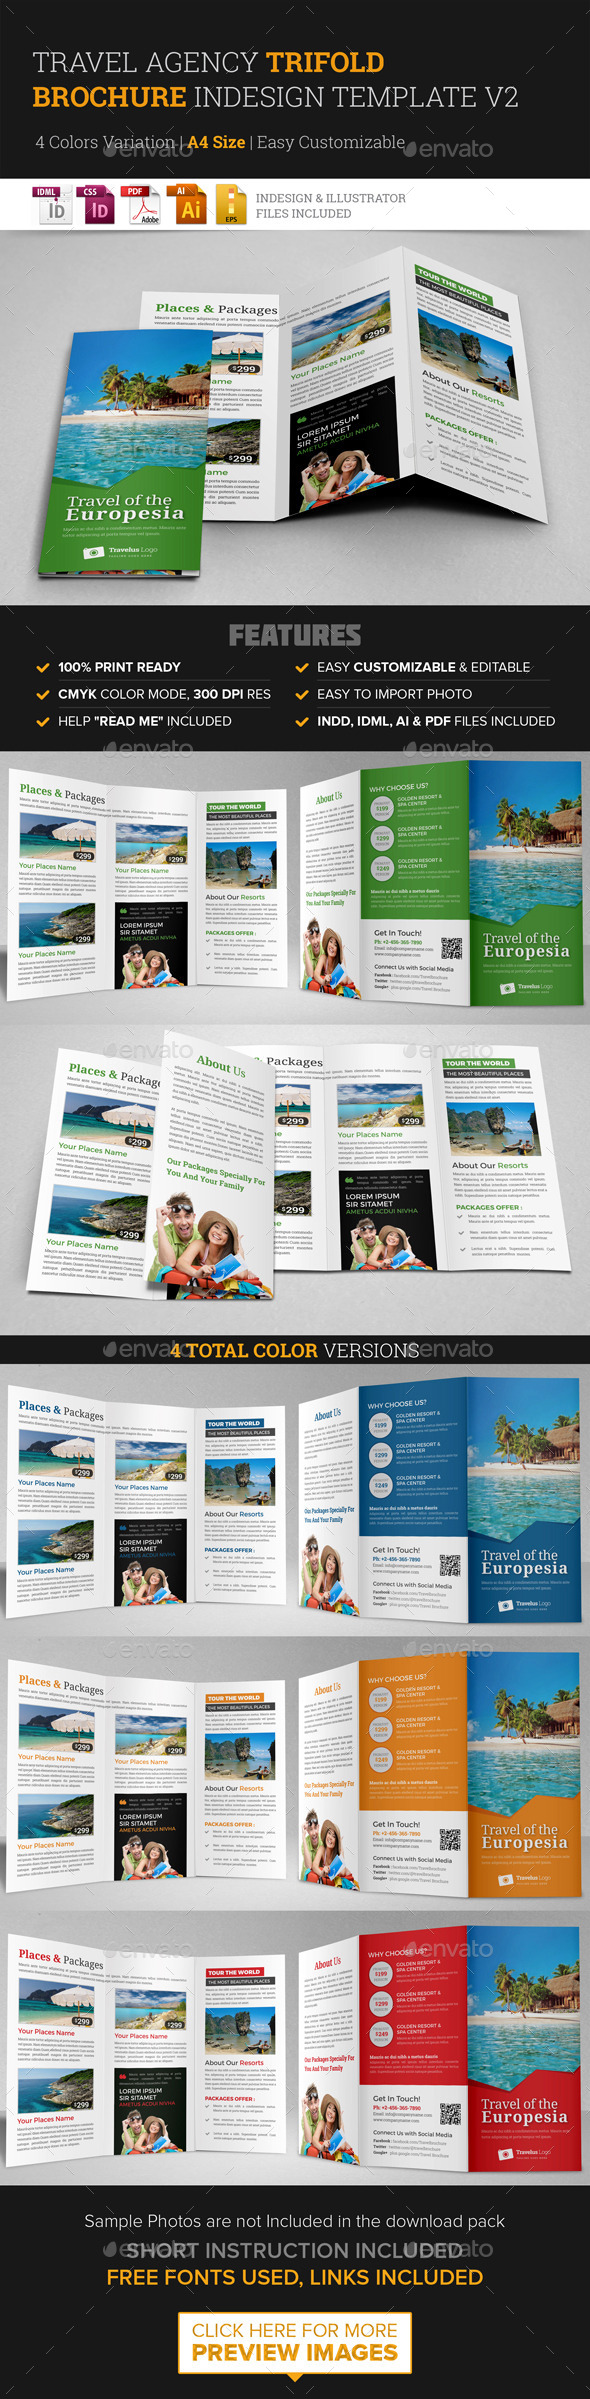 indesign trifold brochure template - travel trifold brochure indesign template v2 by